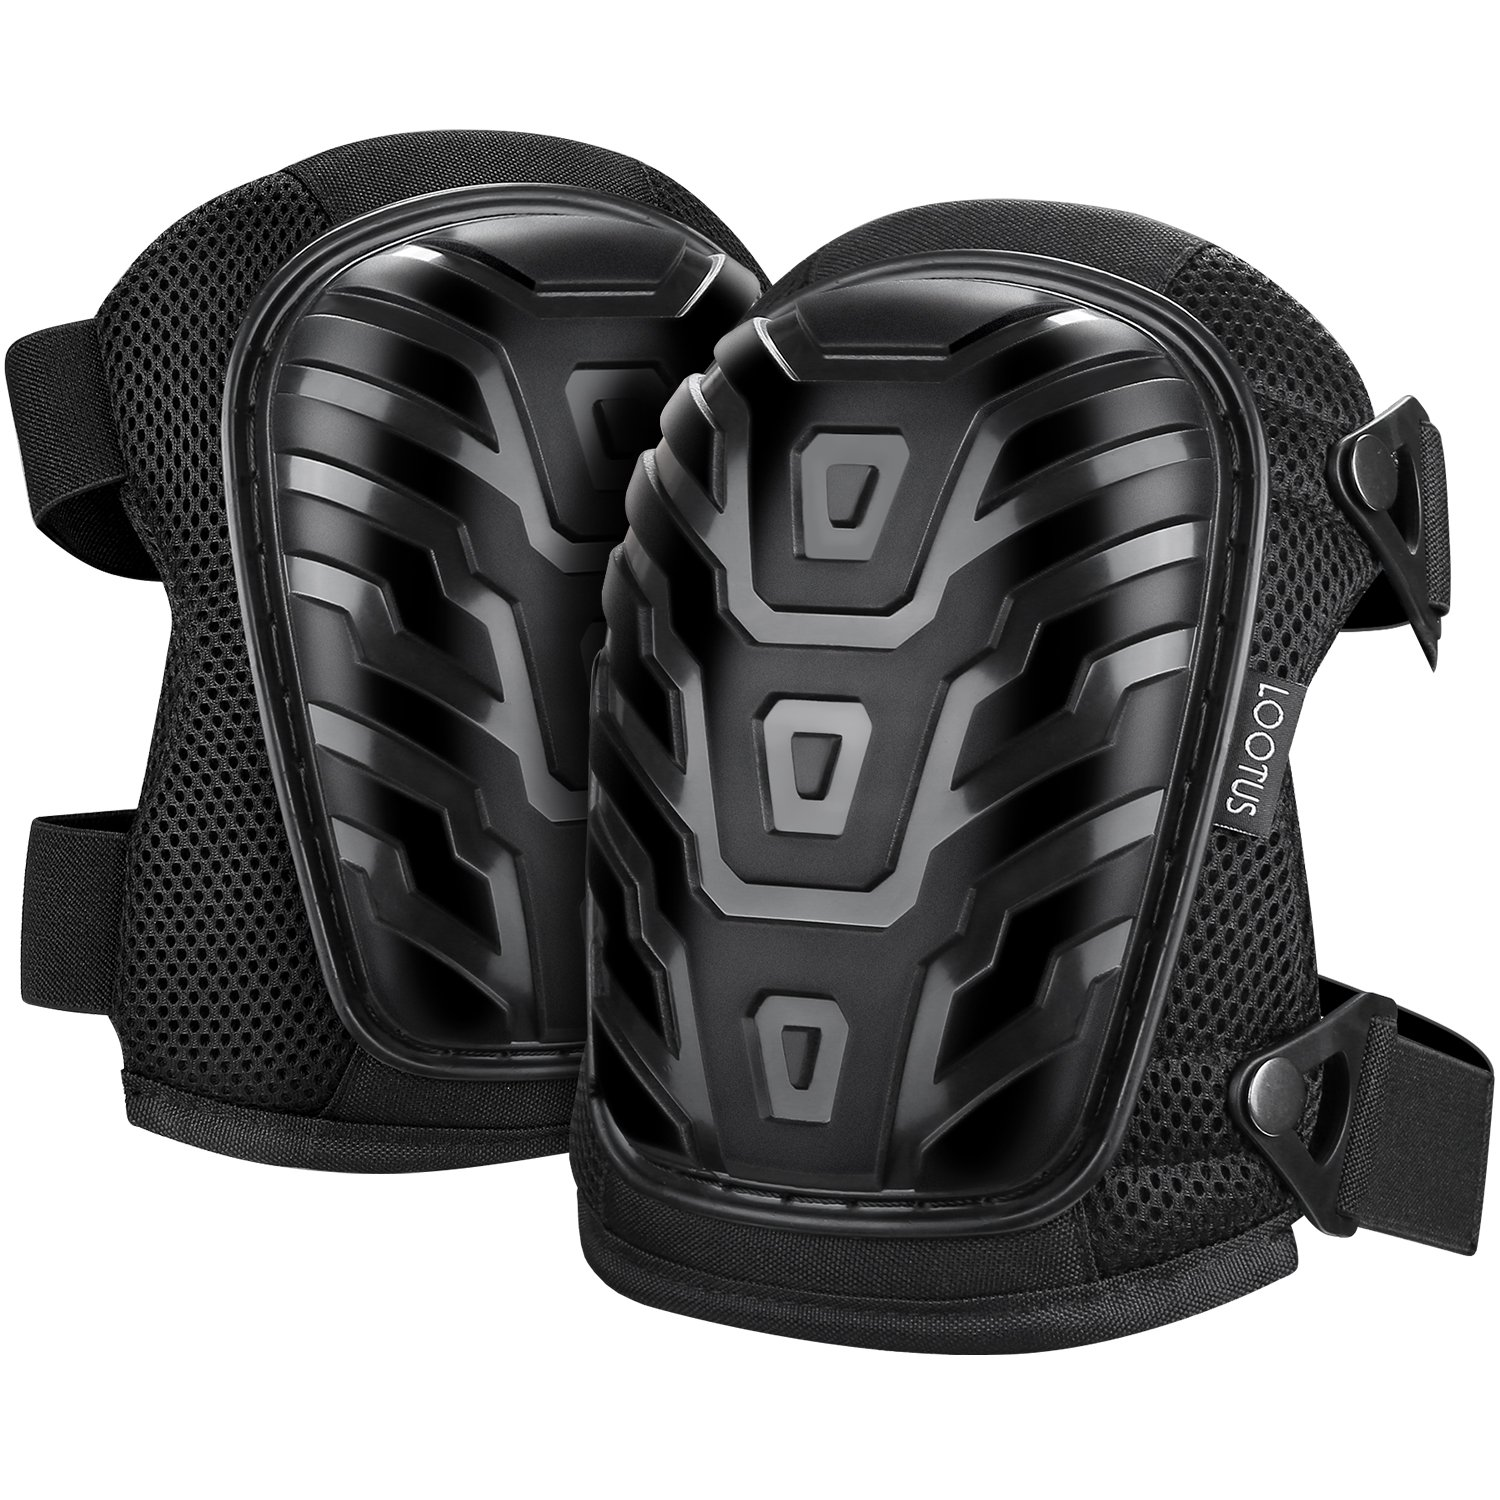 LOOTUS Construction Knee Pads with Heavy Duty Foam Padding, 2 Adjustable Straps, Easy-fix Clips and Soft Gel Cushion, Ideal for Gardening, Flooring Cleaning, Professional Knee Pads for Work